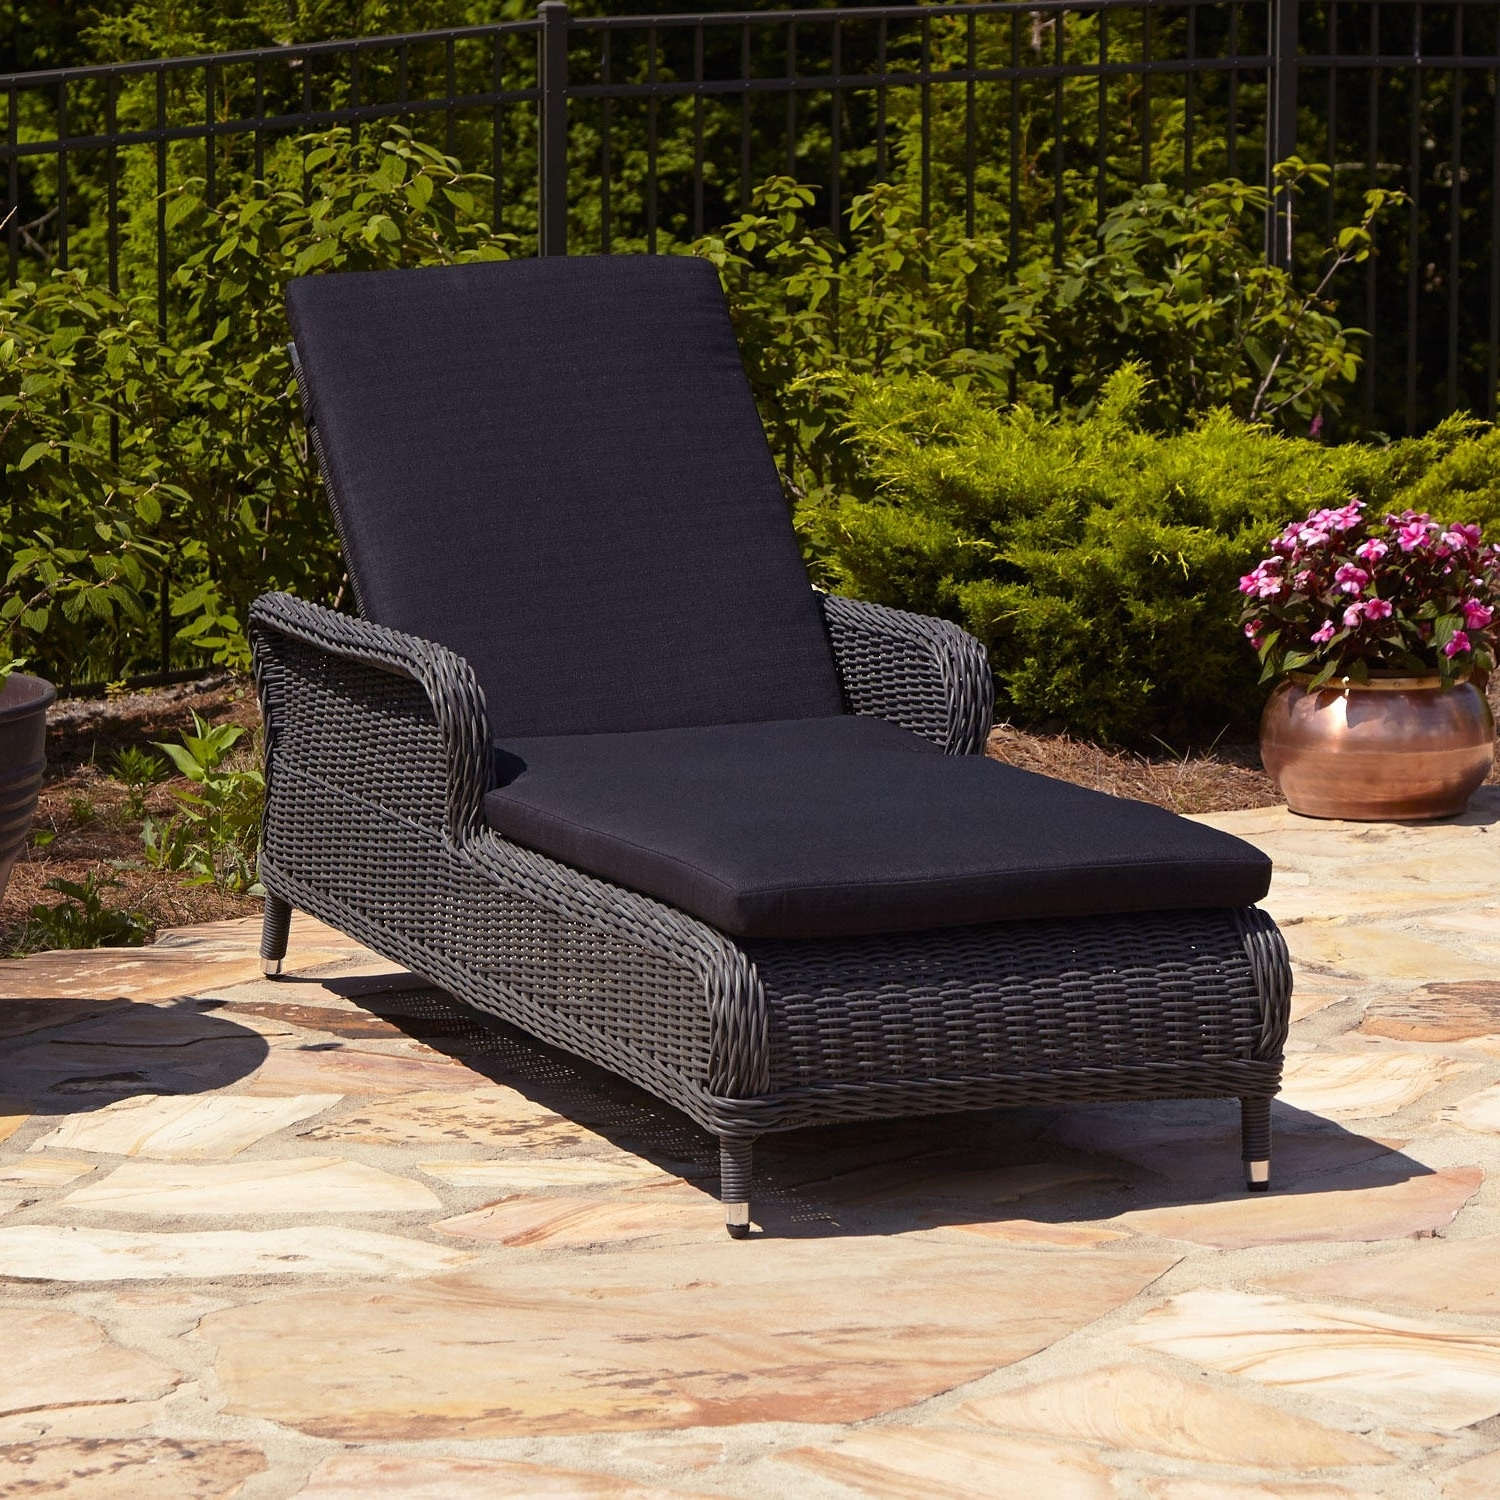 Current Remarkable Wicker Chaise Lounge Chair Gray Patio Furniture All Intended For Eliana Outdoor Brown Wicker Chaise Lounge Chairs (View 2 of 15)